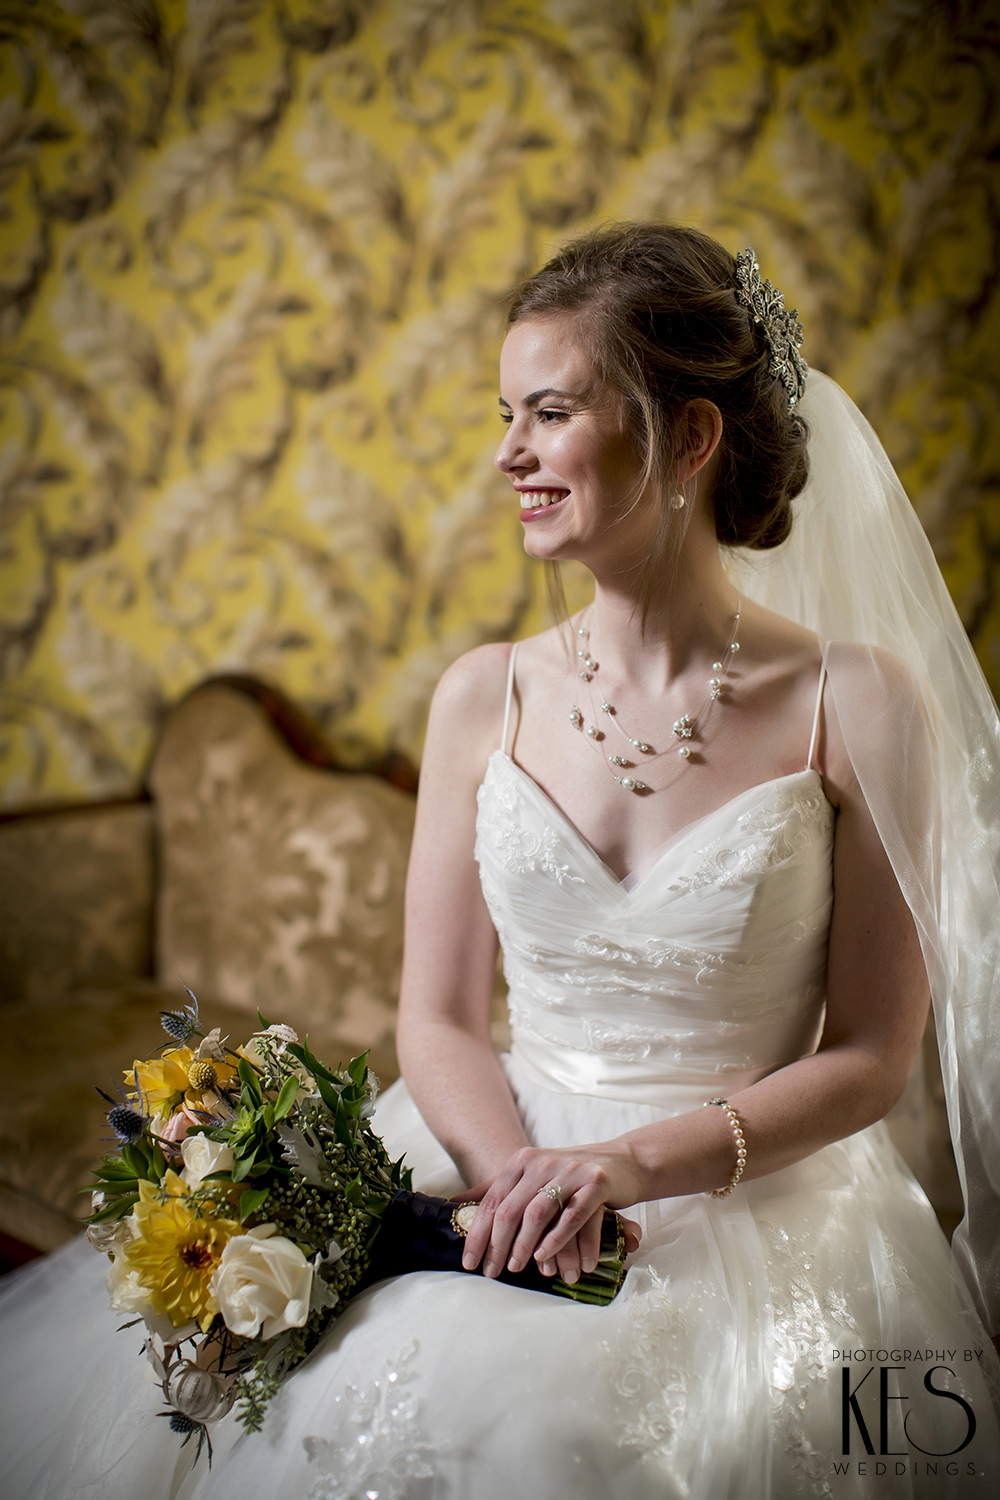 KES Weddings Trapnall Hall Bridals and PVCC5.JPG